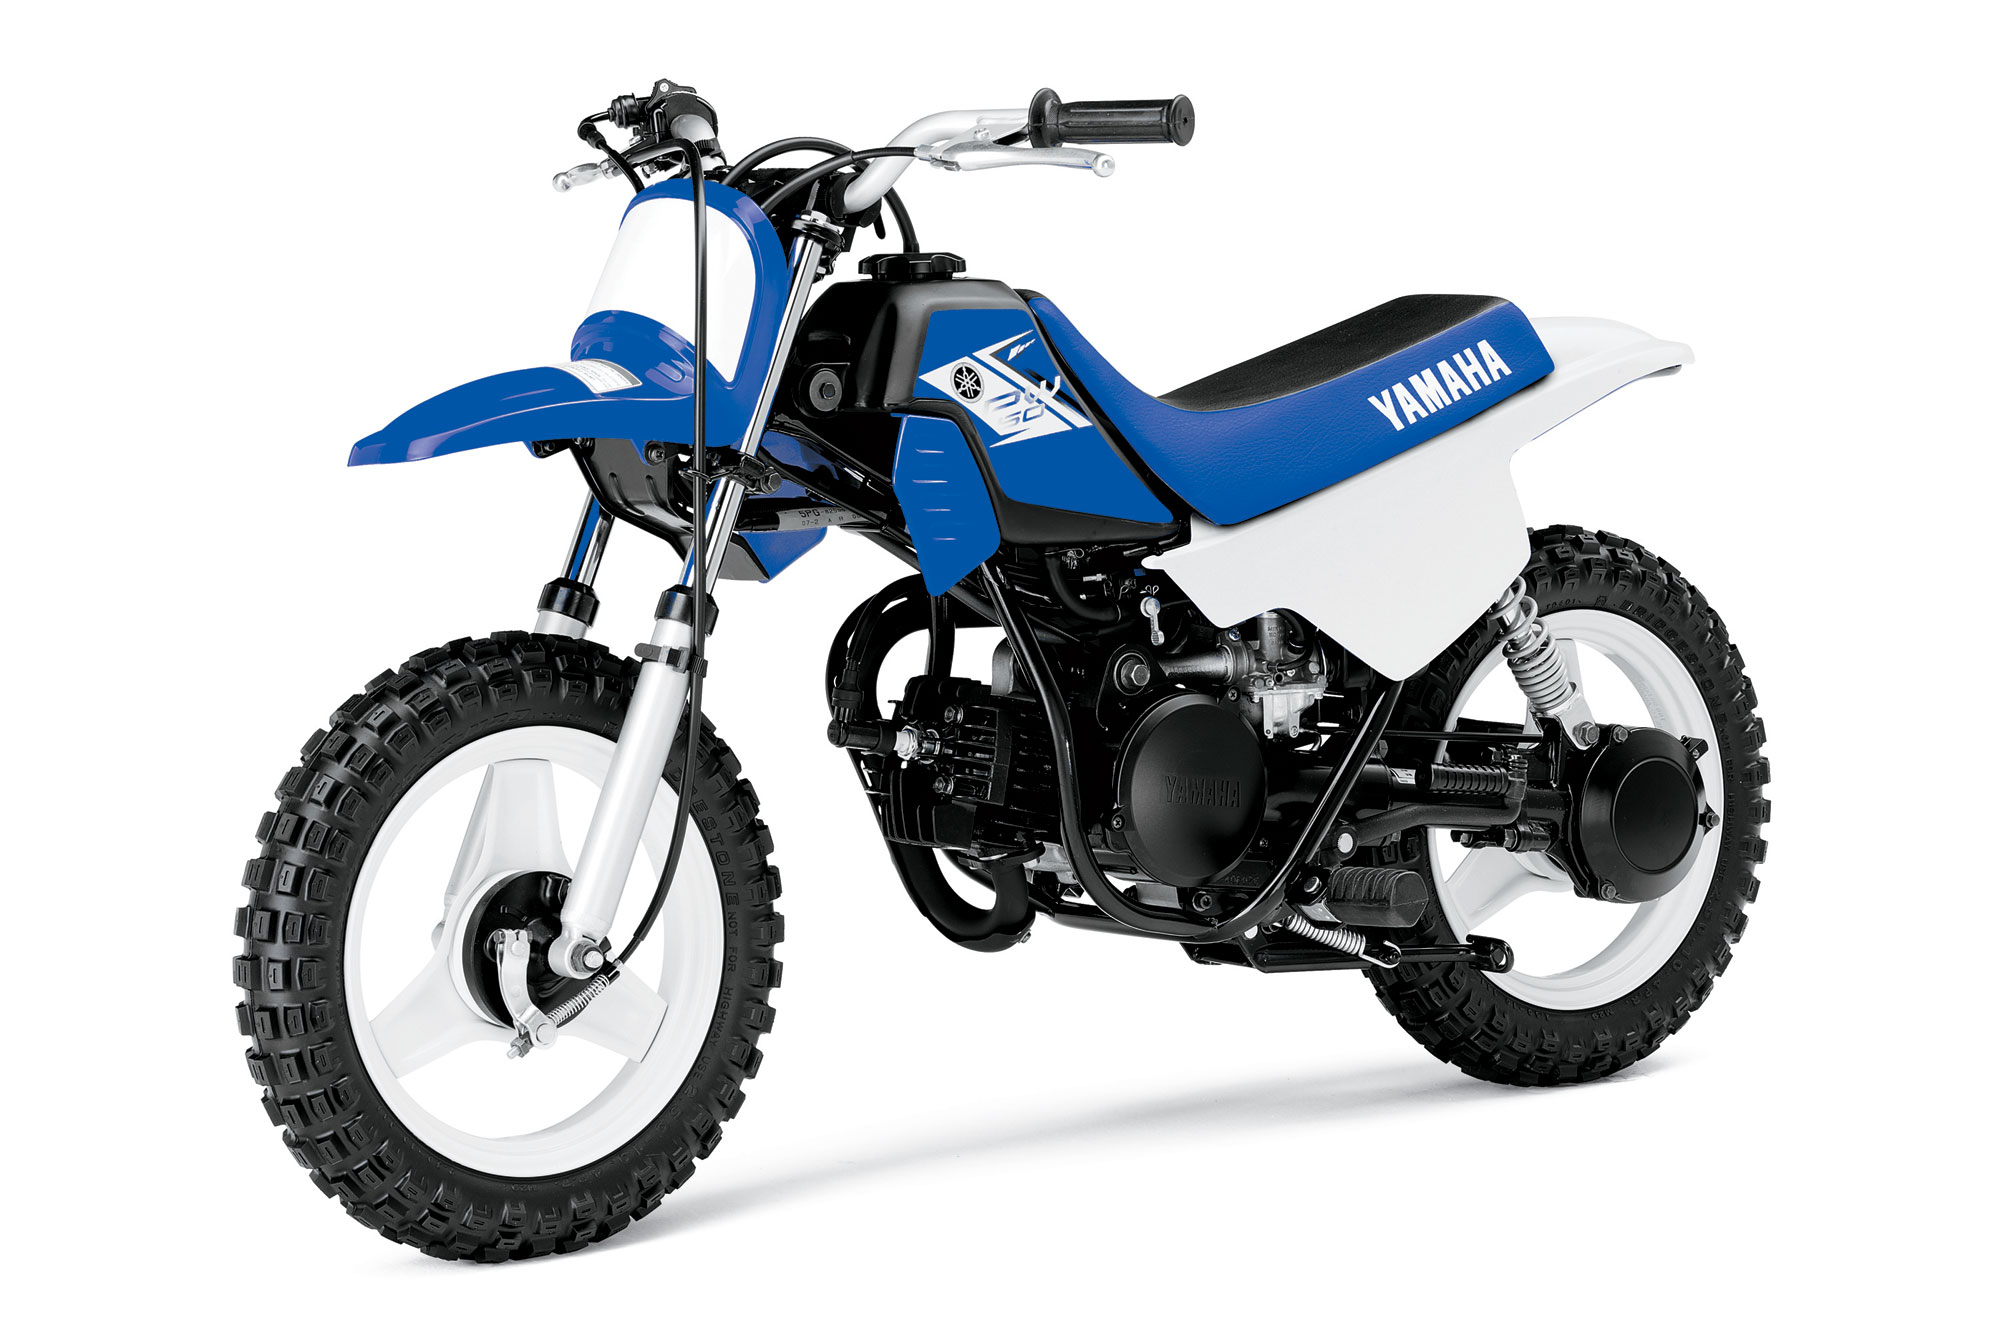 2013 yamaha pw50 2 stroke review. Black Bedroom Furniture Sets. Home Design Ideas